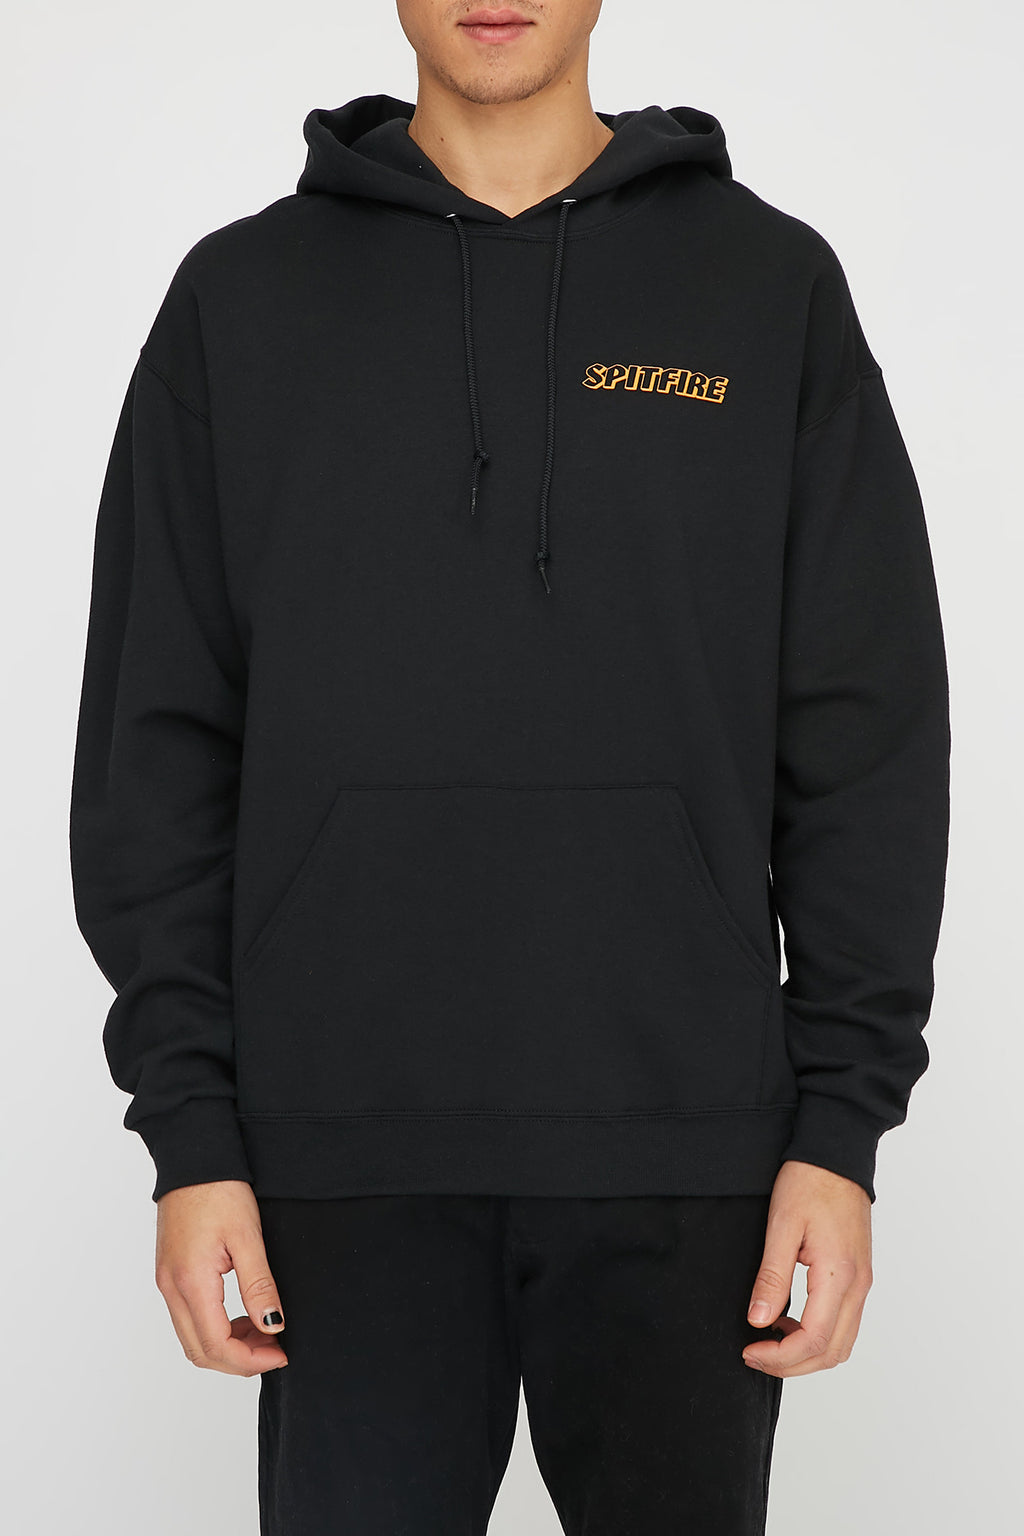 Spitfire Mens Classic Black Hellfire Hoodie